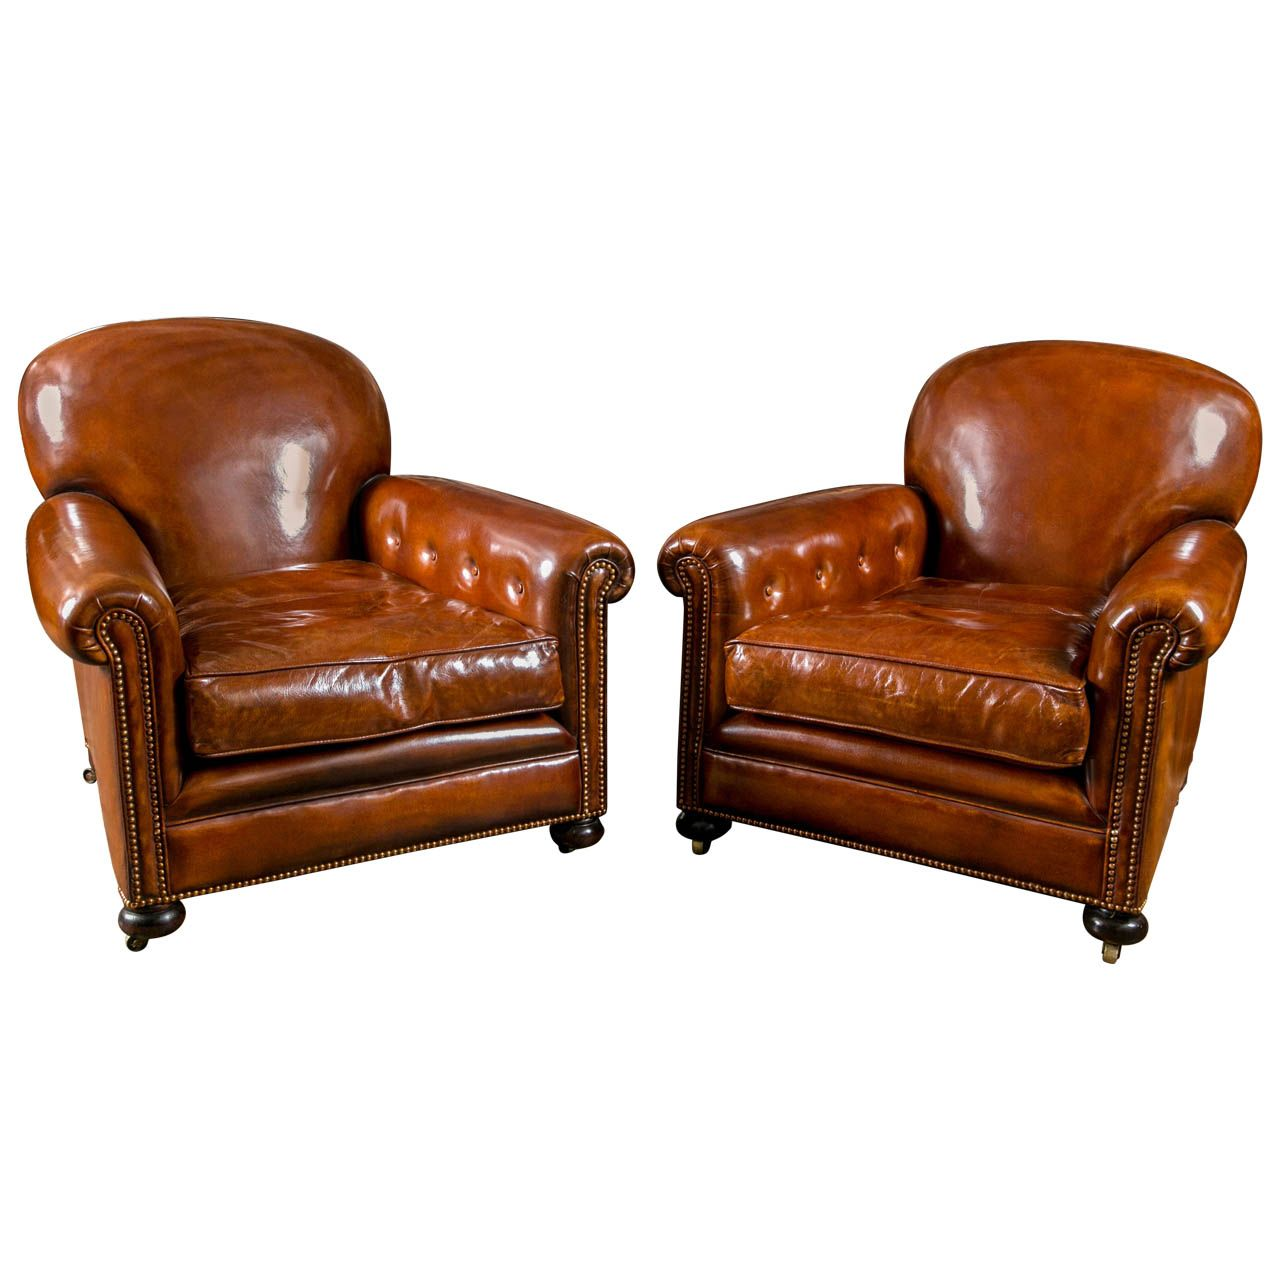 French leather club chairs leather club chairs club